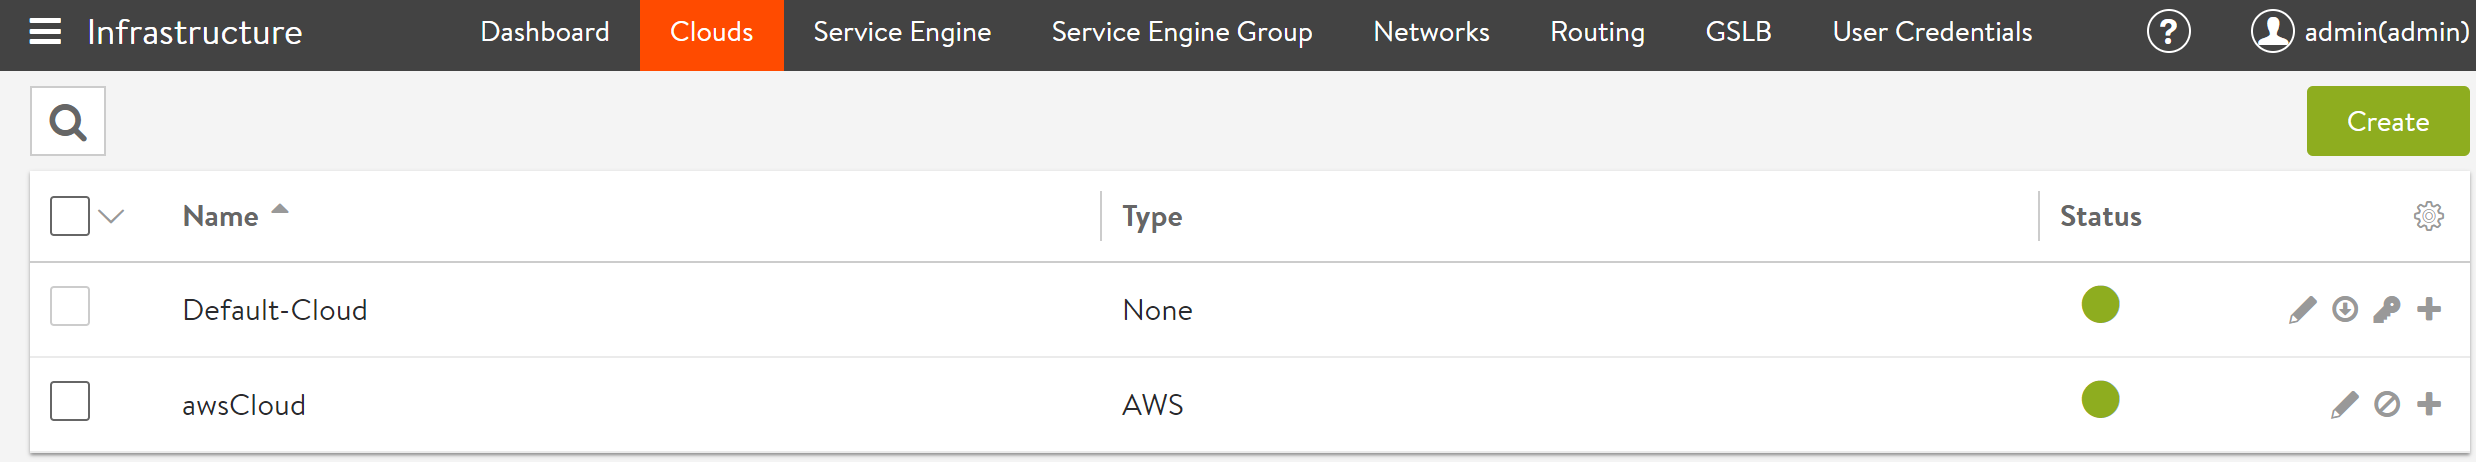 Support for AWS SQS Encryption